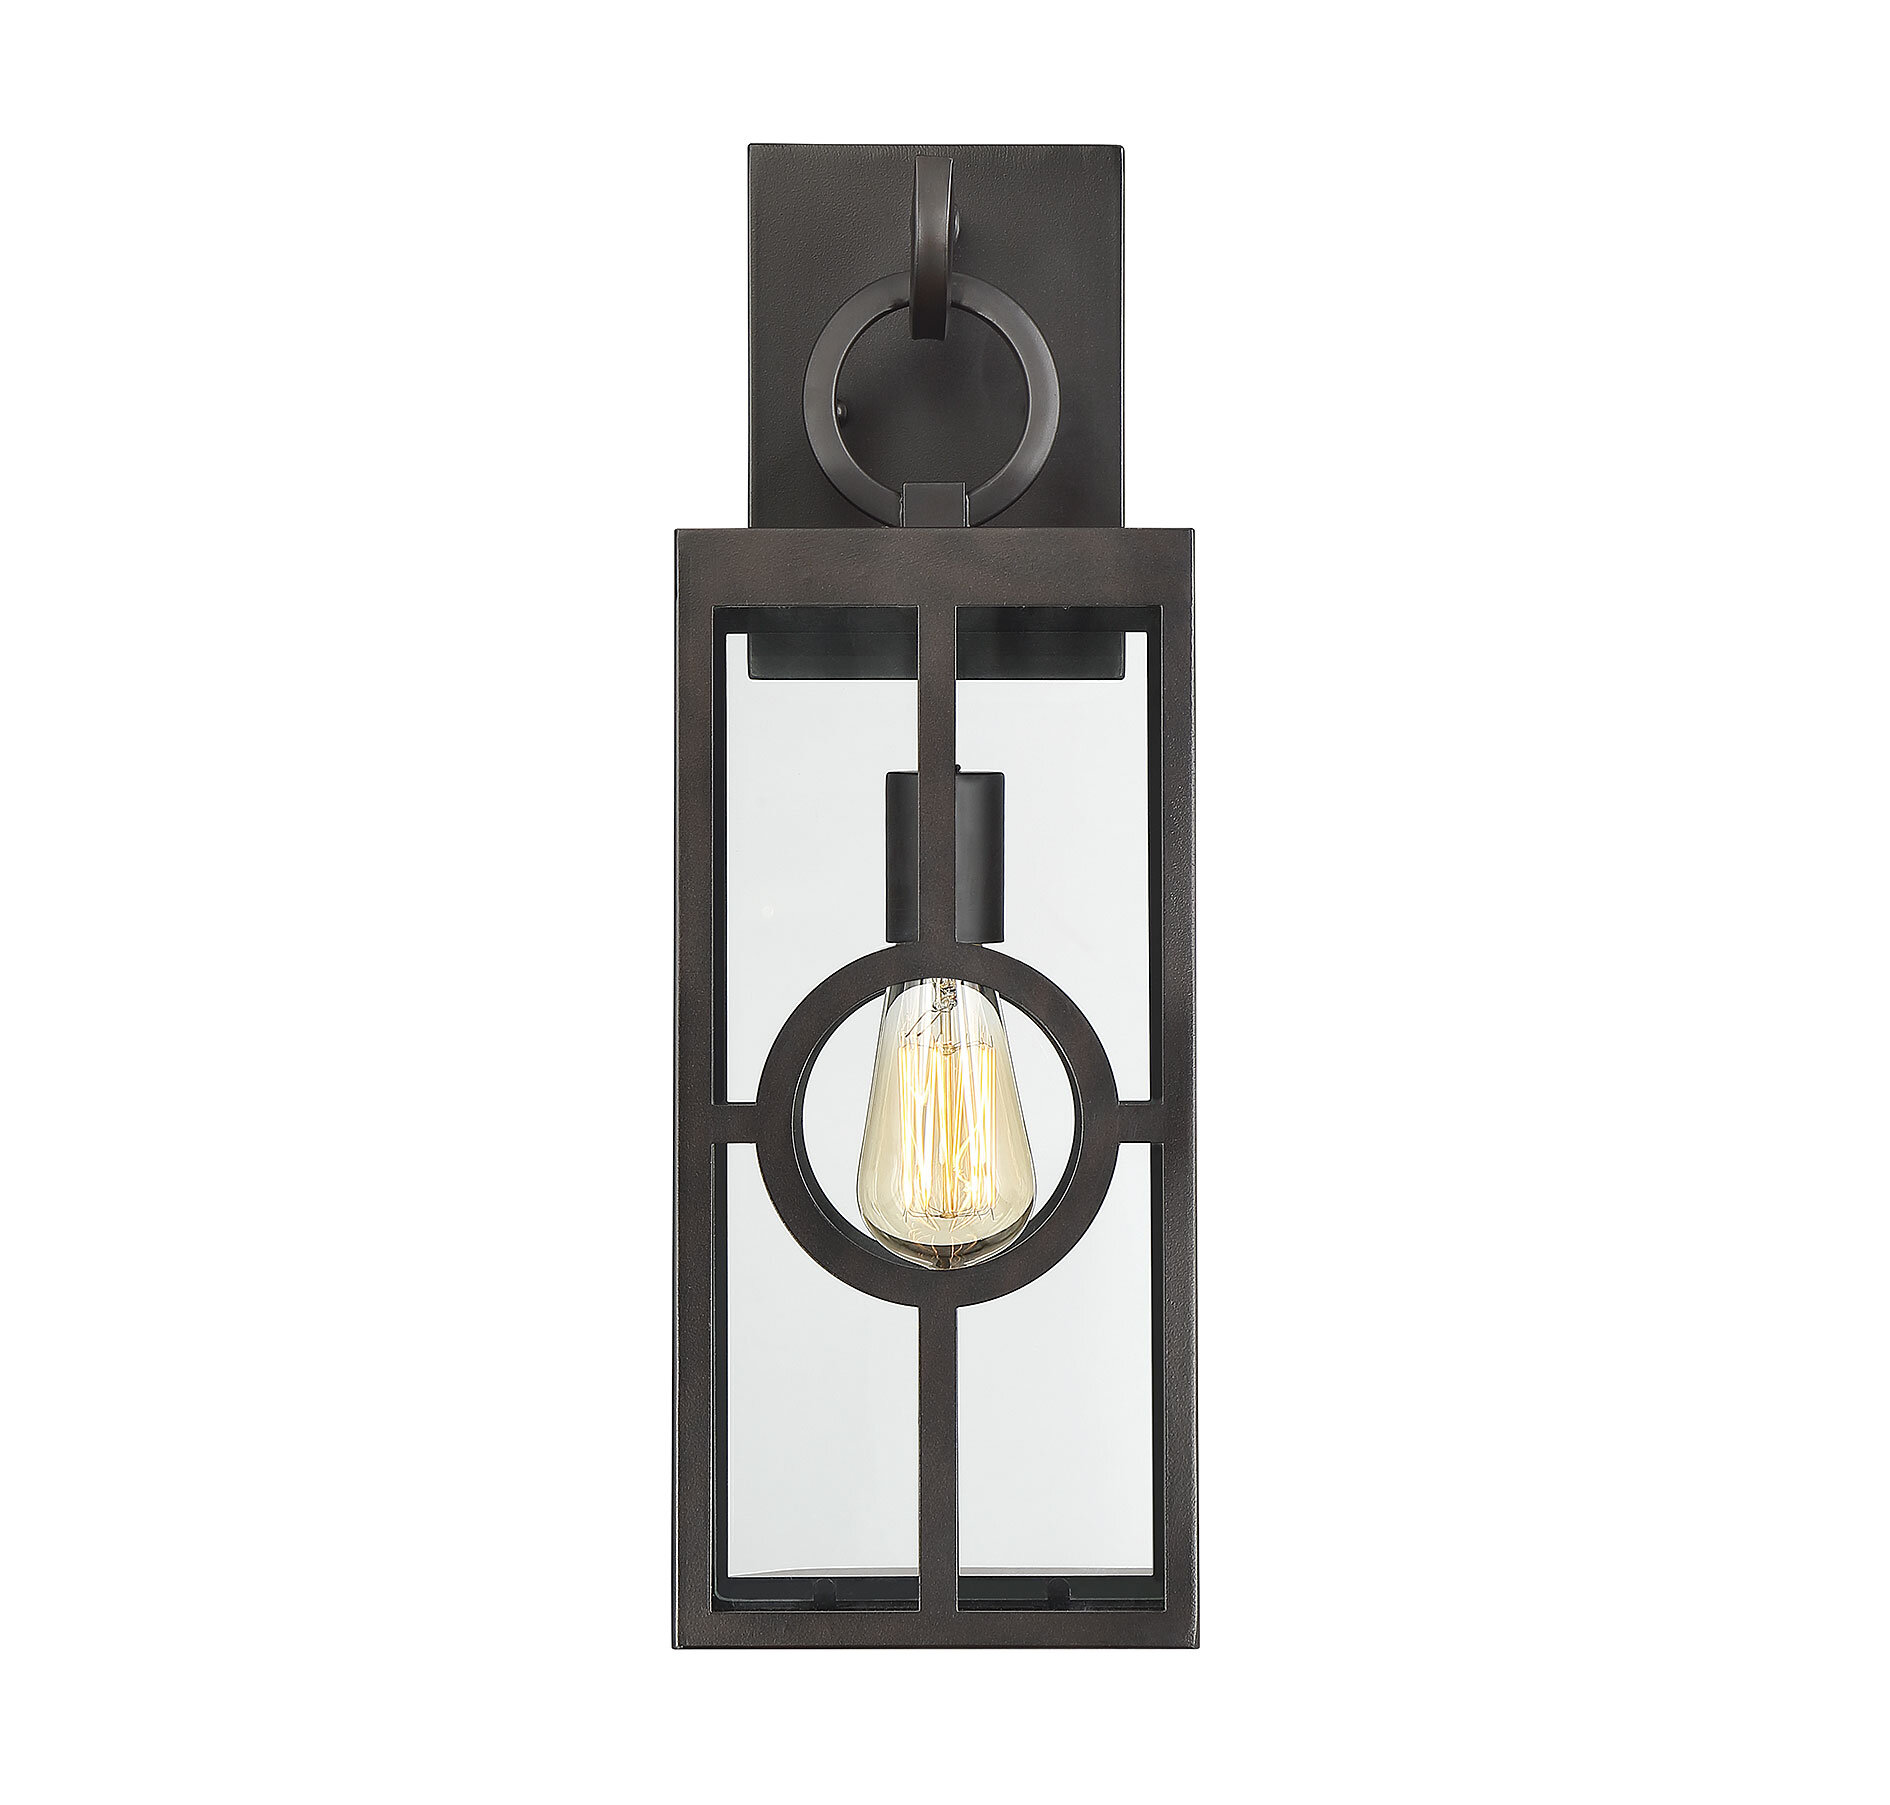 Gracie Oaks Wycoff English Bronze 1 Bulb Outdoor Wall Lantern Reviews Wayfair